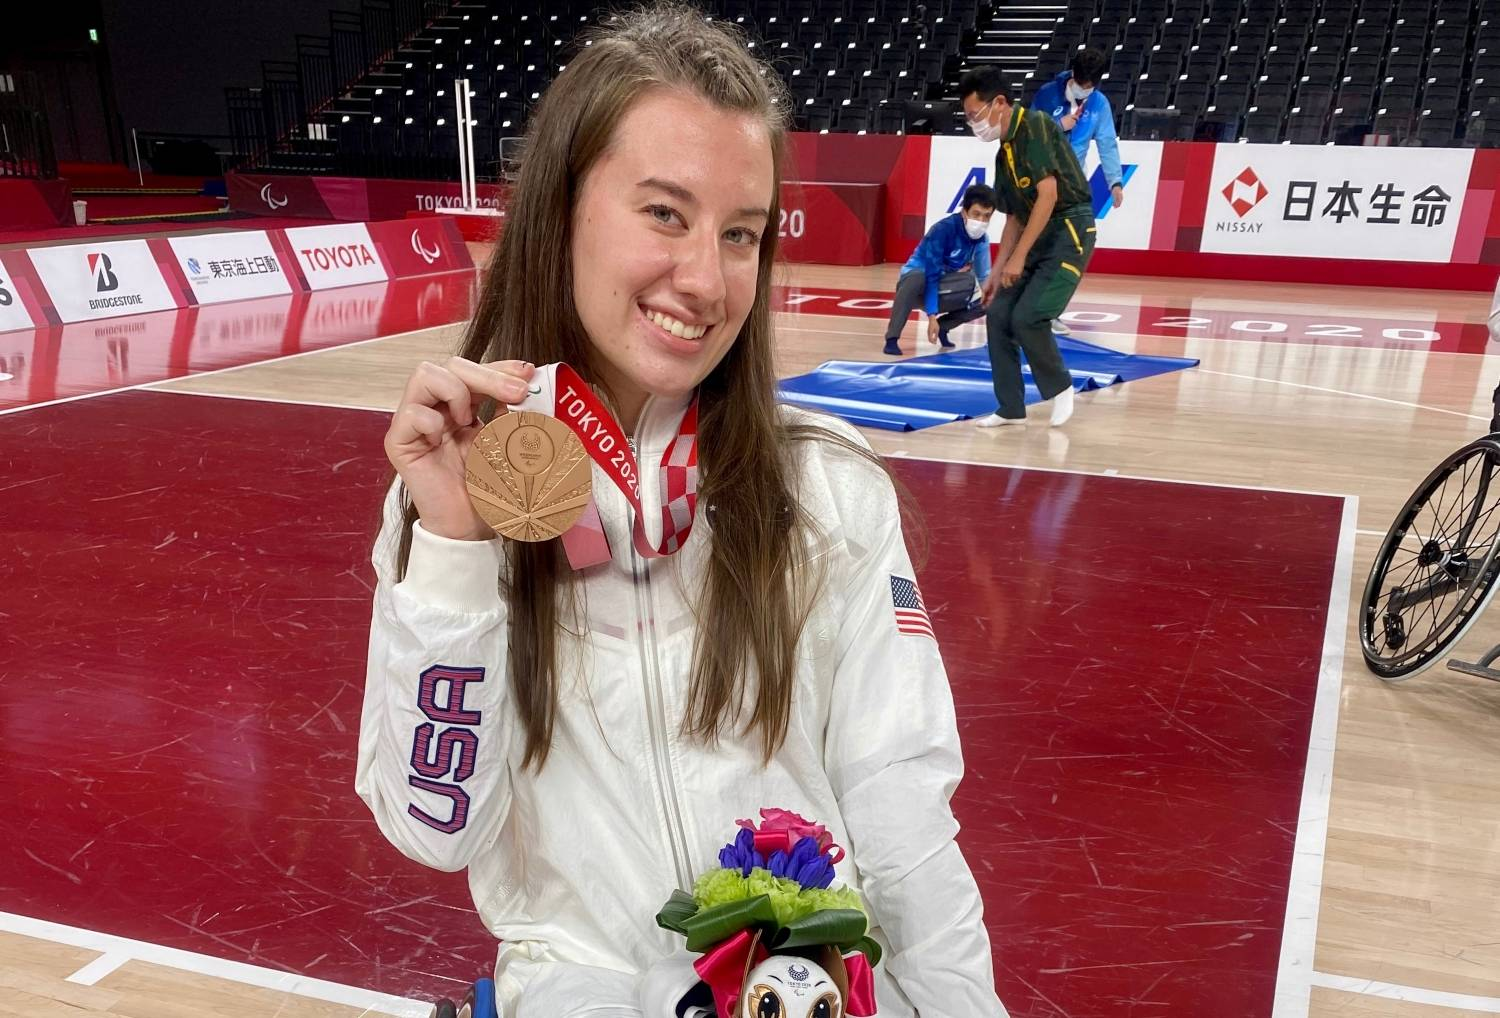 Abby Bauleke, Holding her bronze medal at the Paralympics.